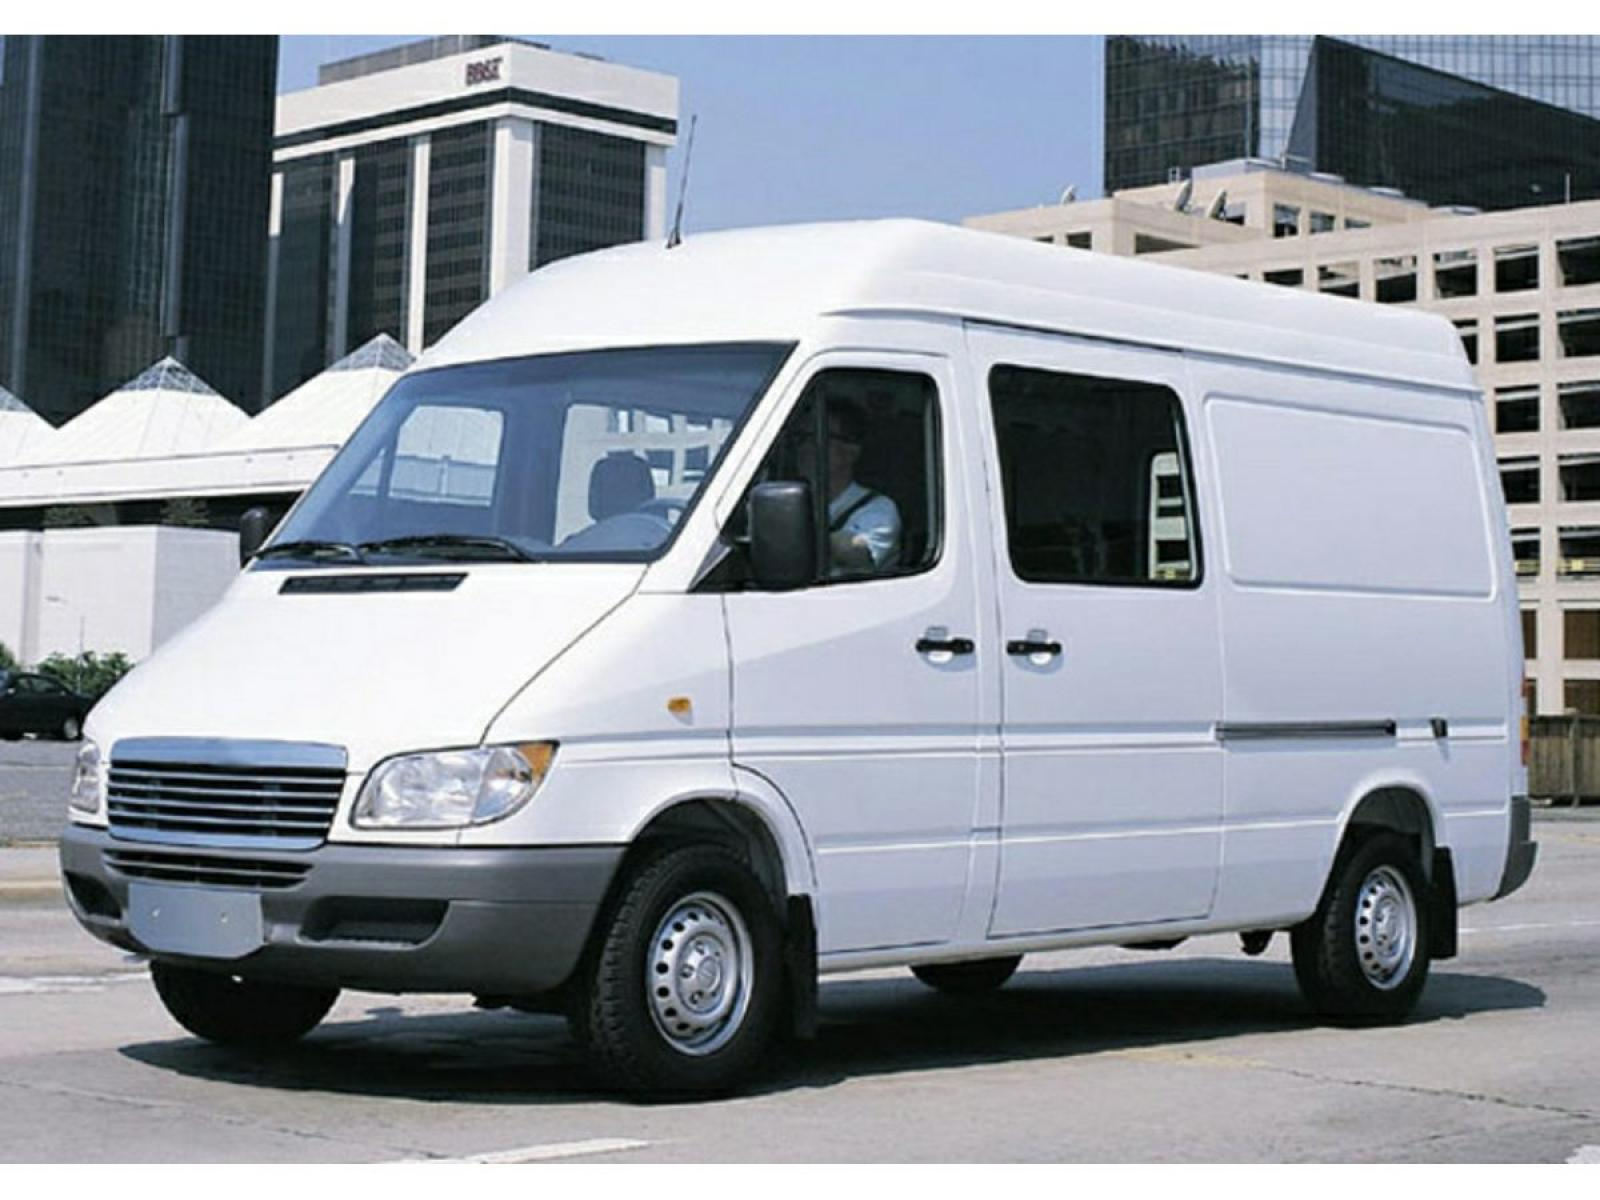 2003 dodge sprinter information and photos zombiedrive. Black Bedroom Furniture Sets. Home Design Ideas